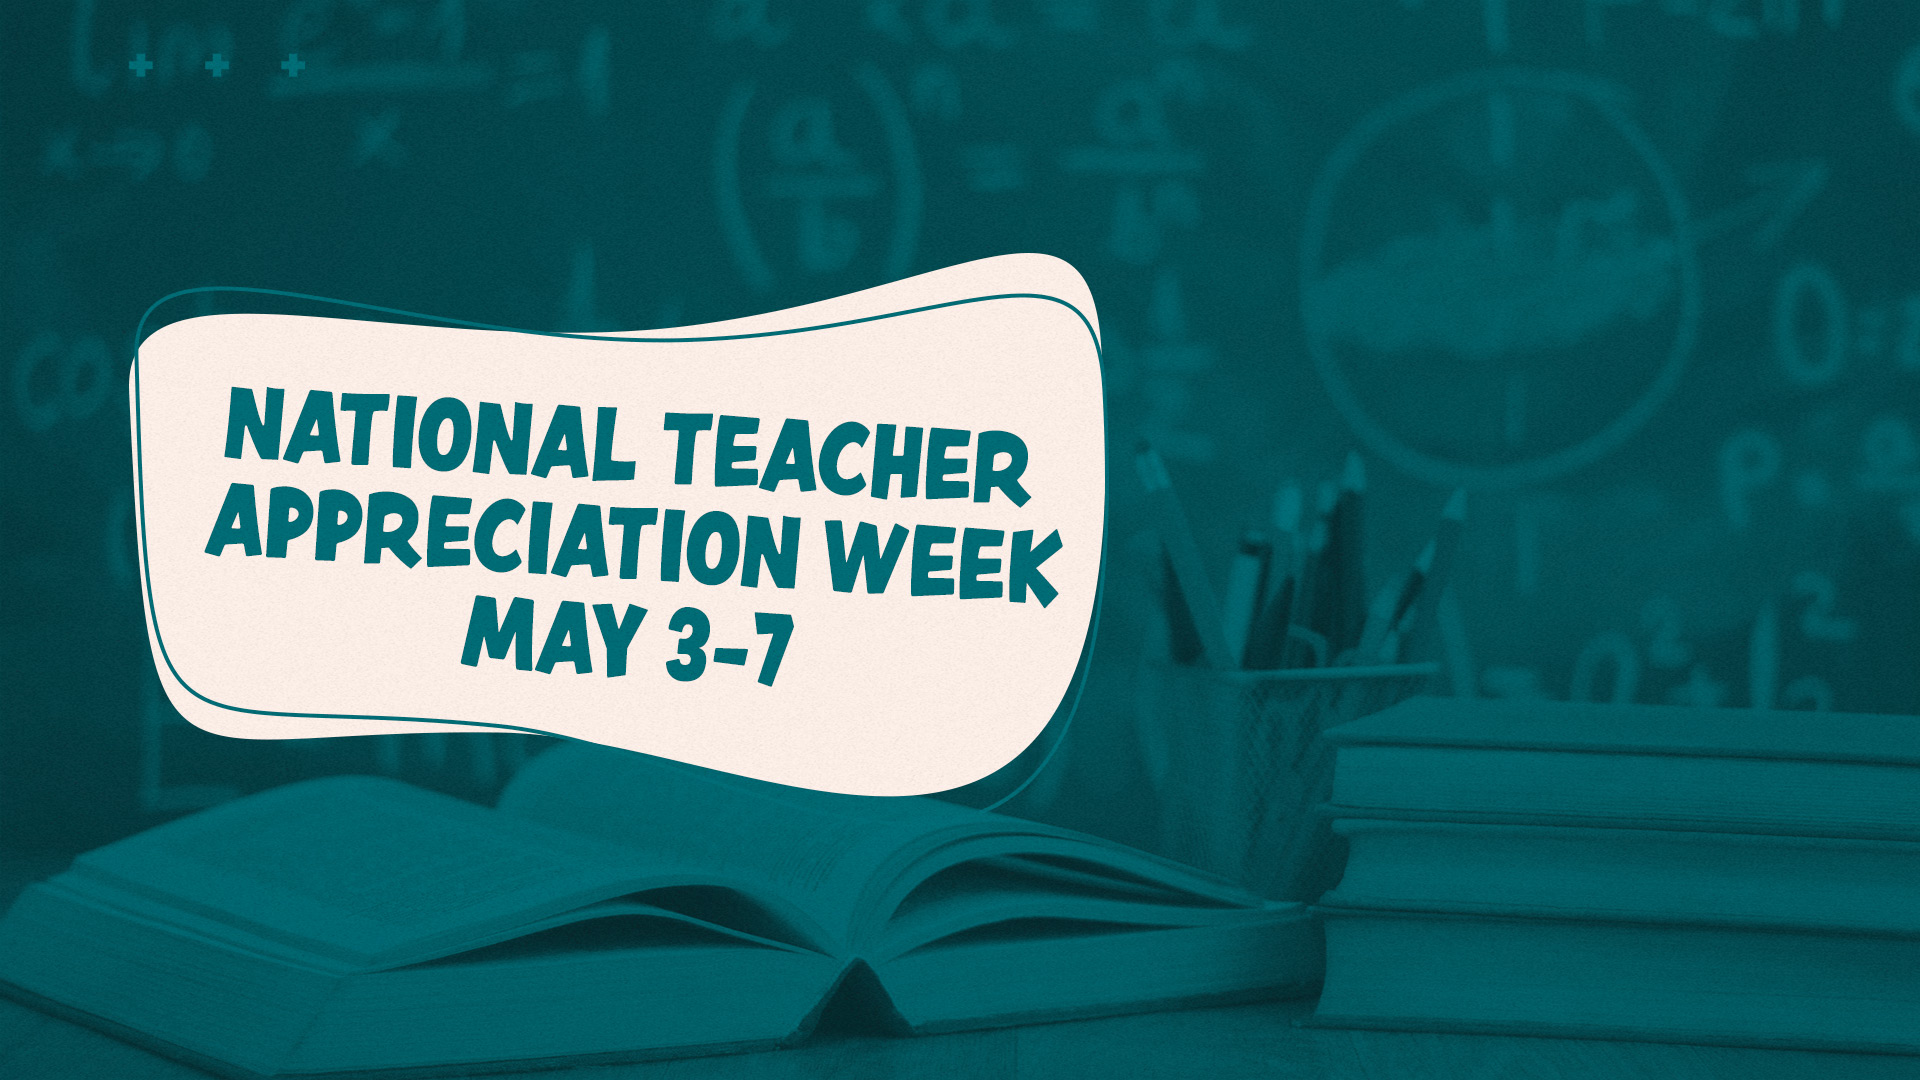 Image: National Teacher Appreciation Week